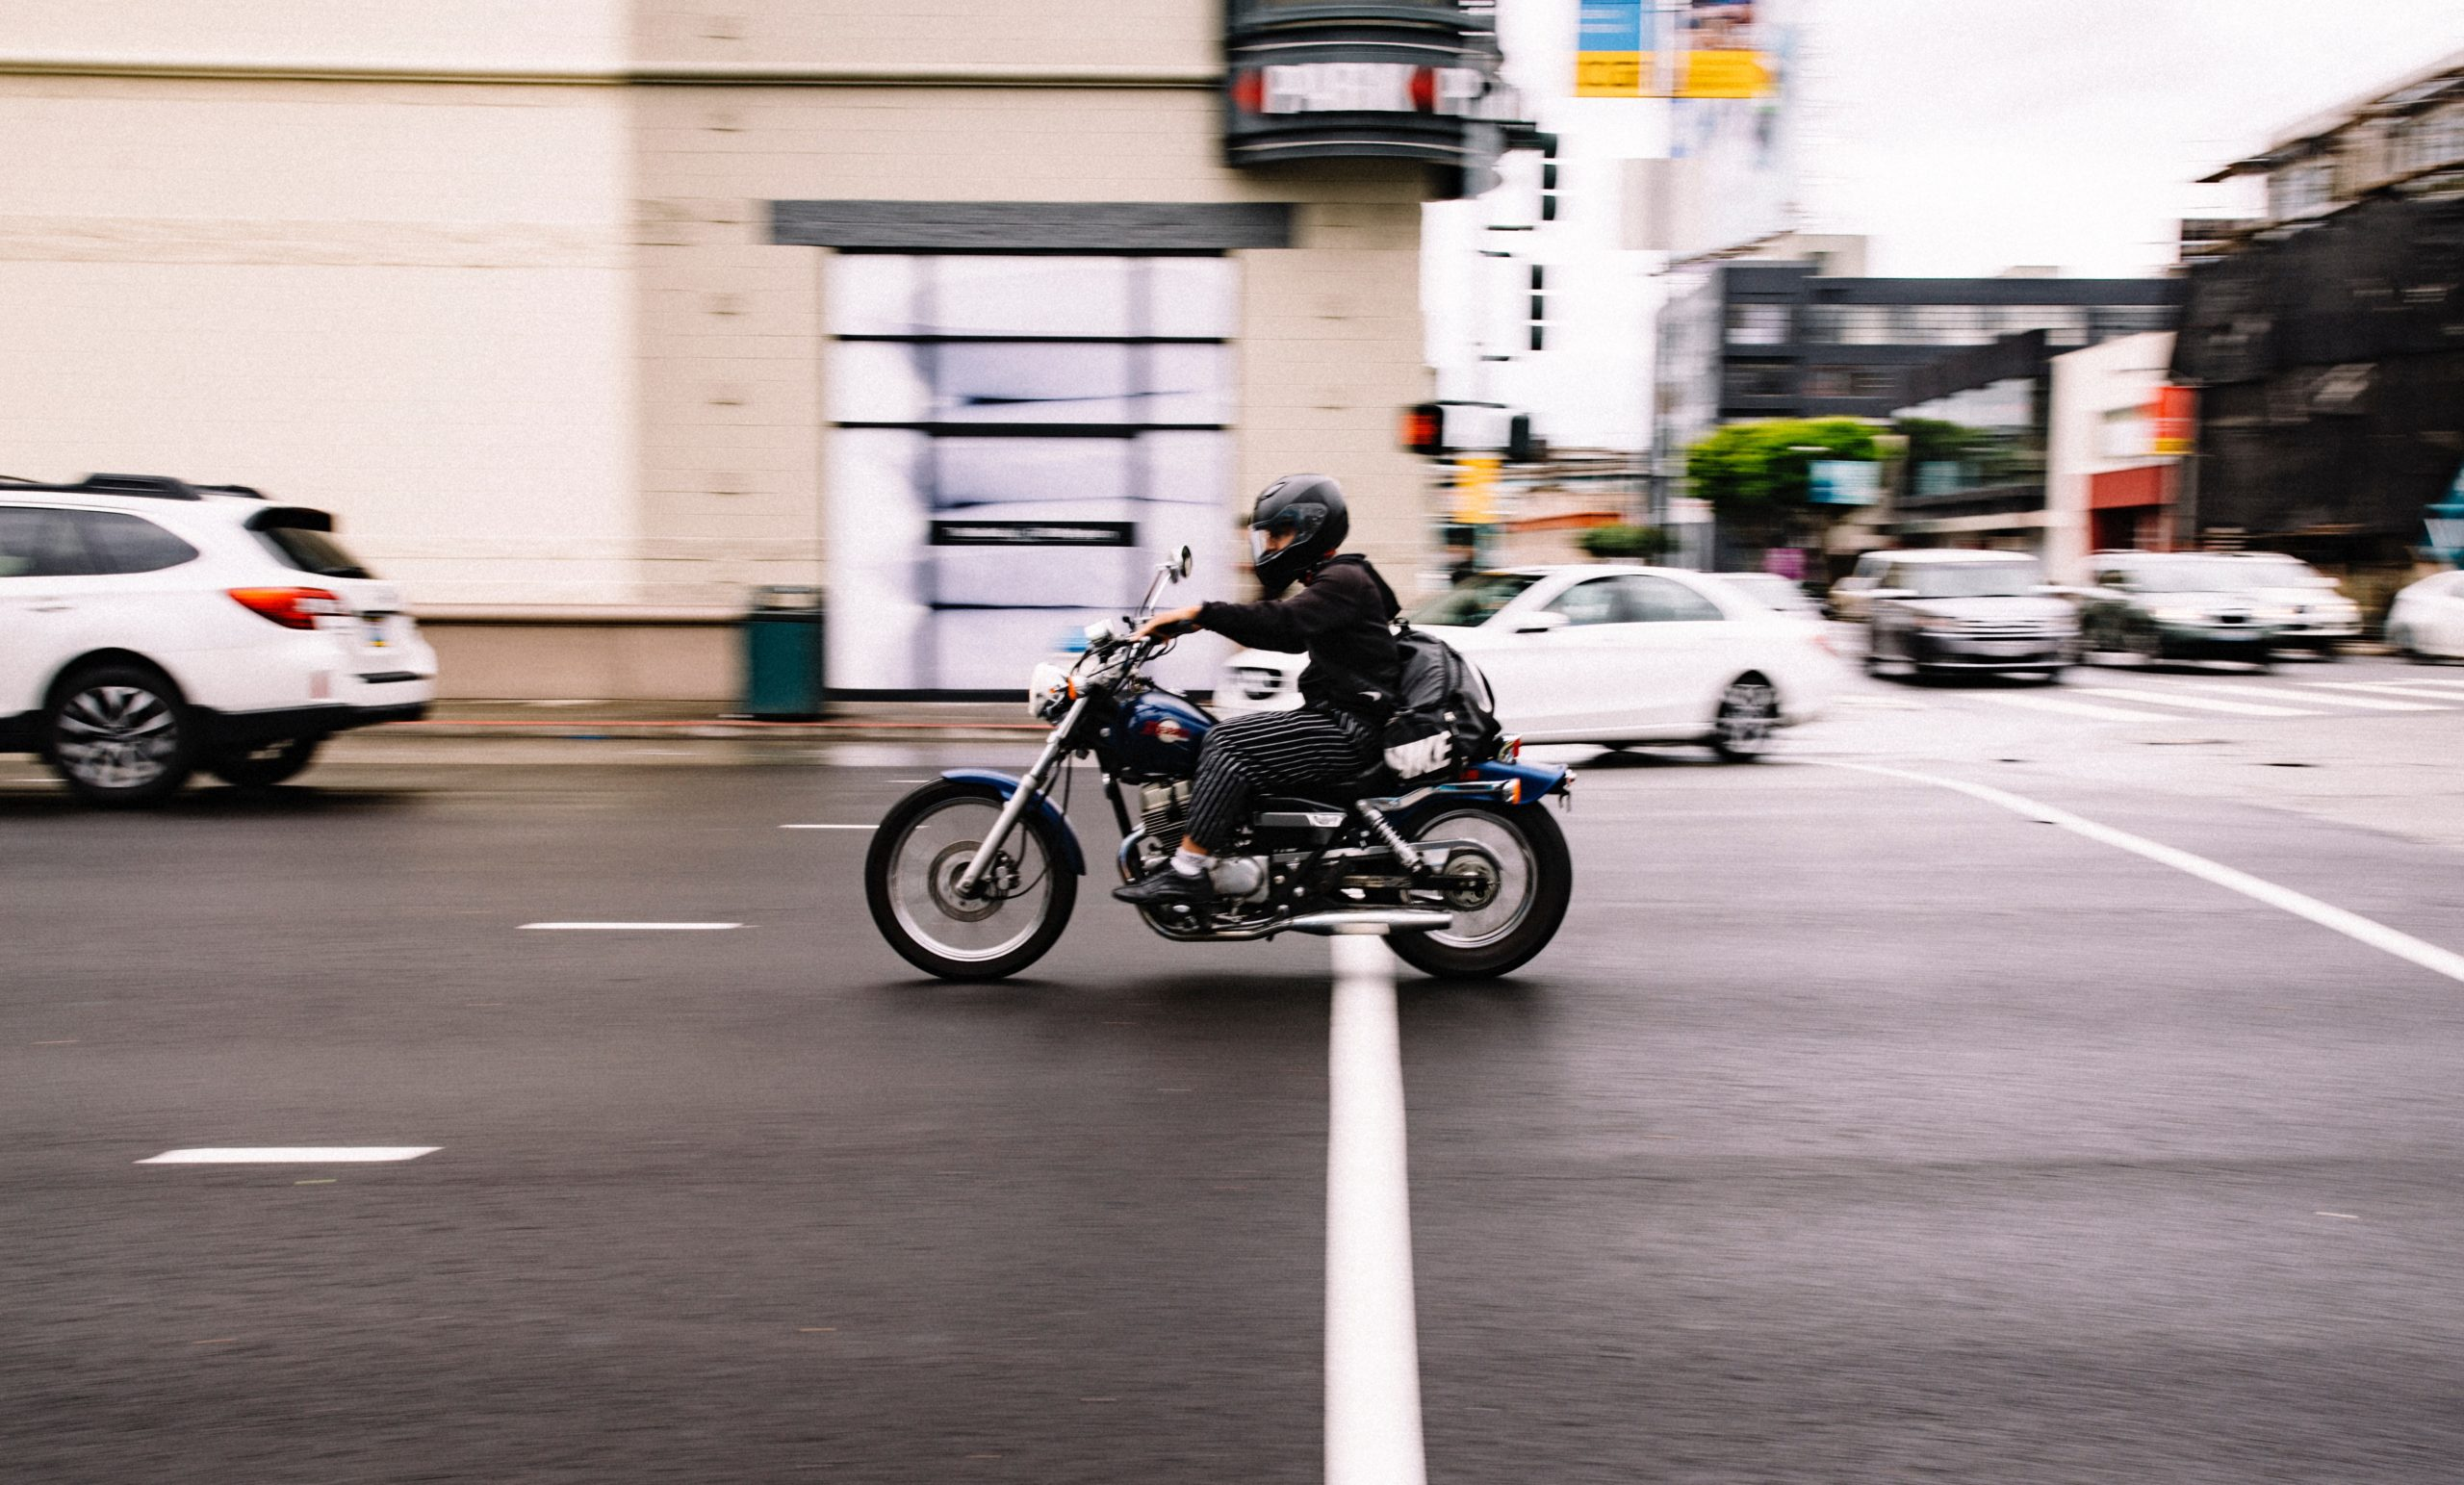 man riding motorcycle on city roads